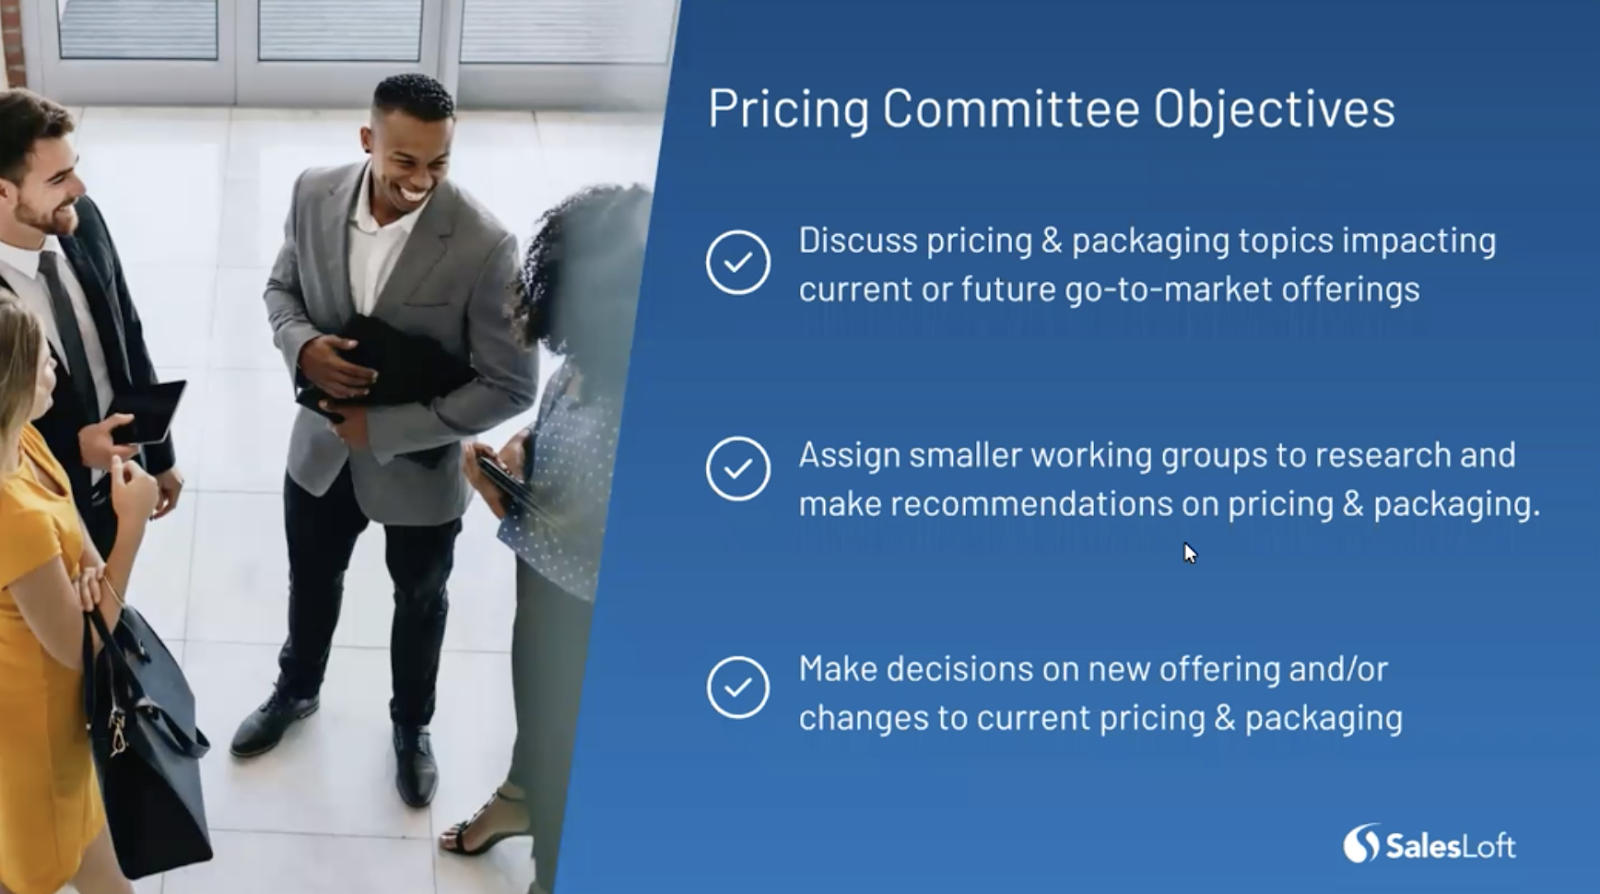 An outline of pricing committee objectives.